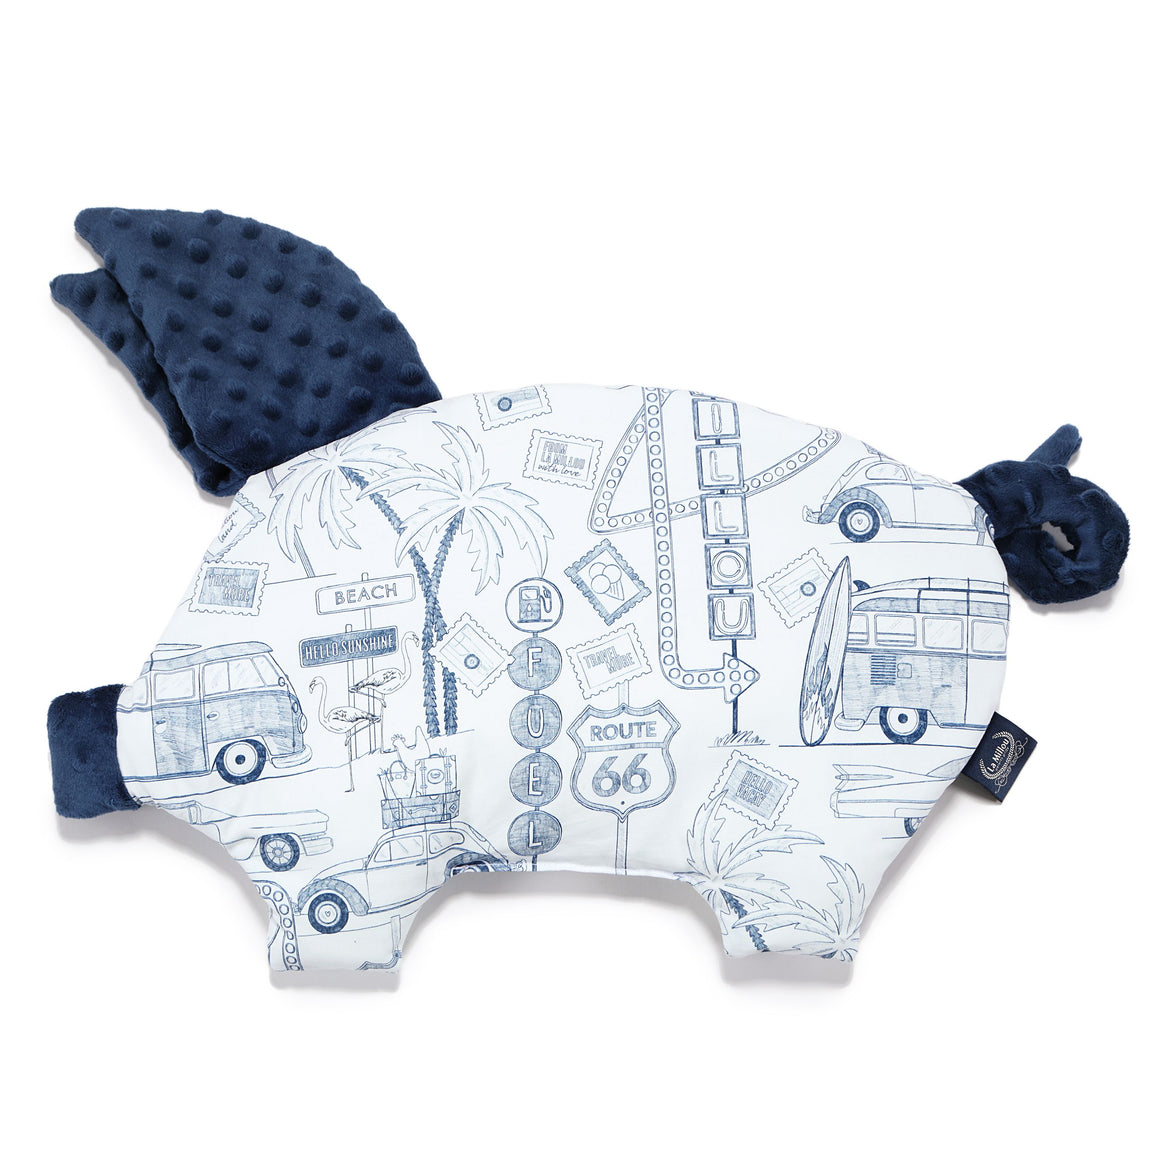 SLEEPY PIG baby pillow - Route 66 | Navy